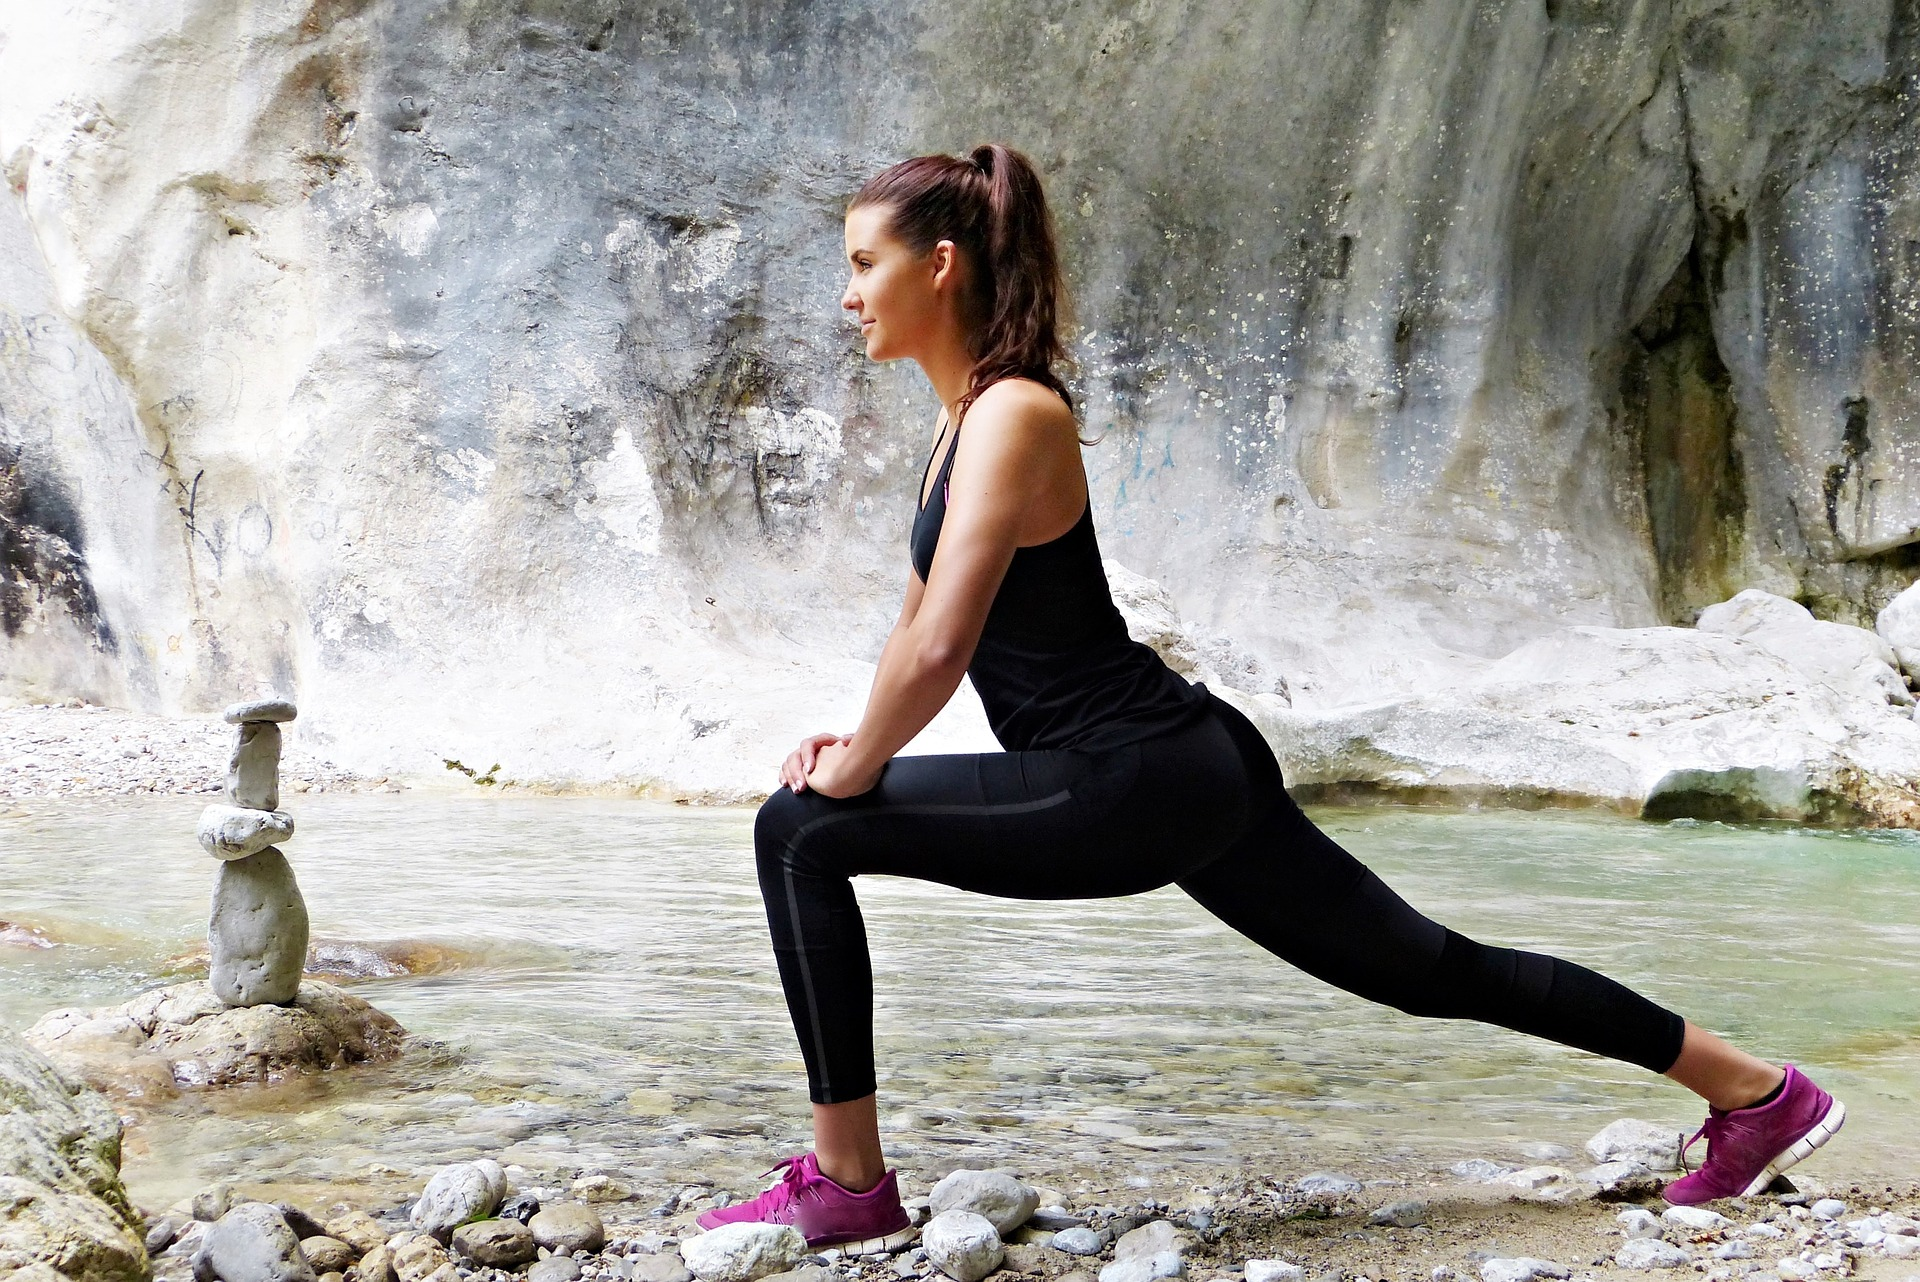 The benefits of stretching go beyond flexibility